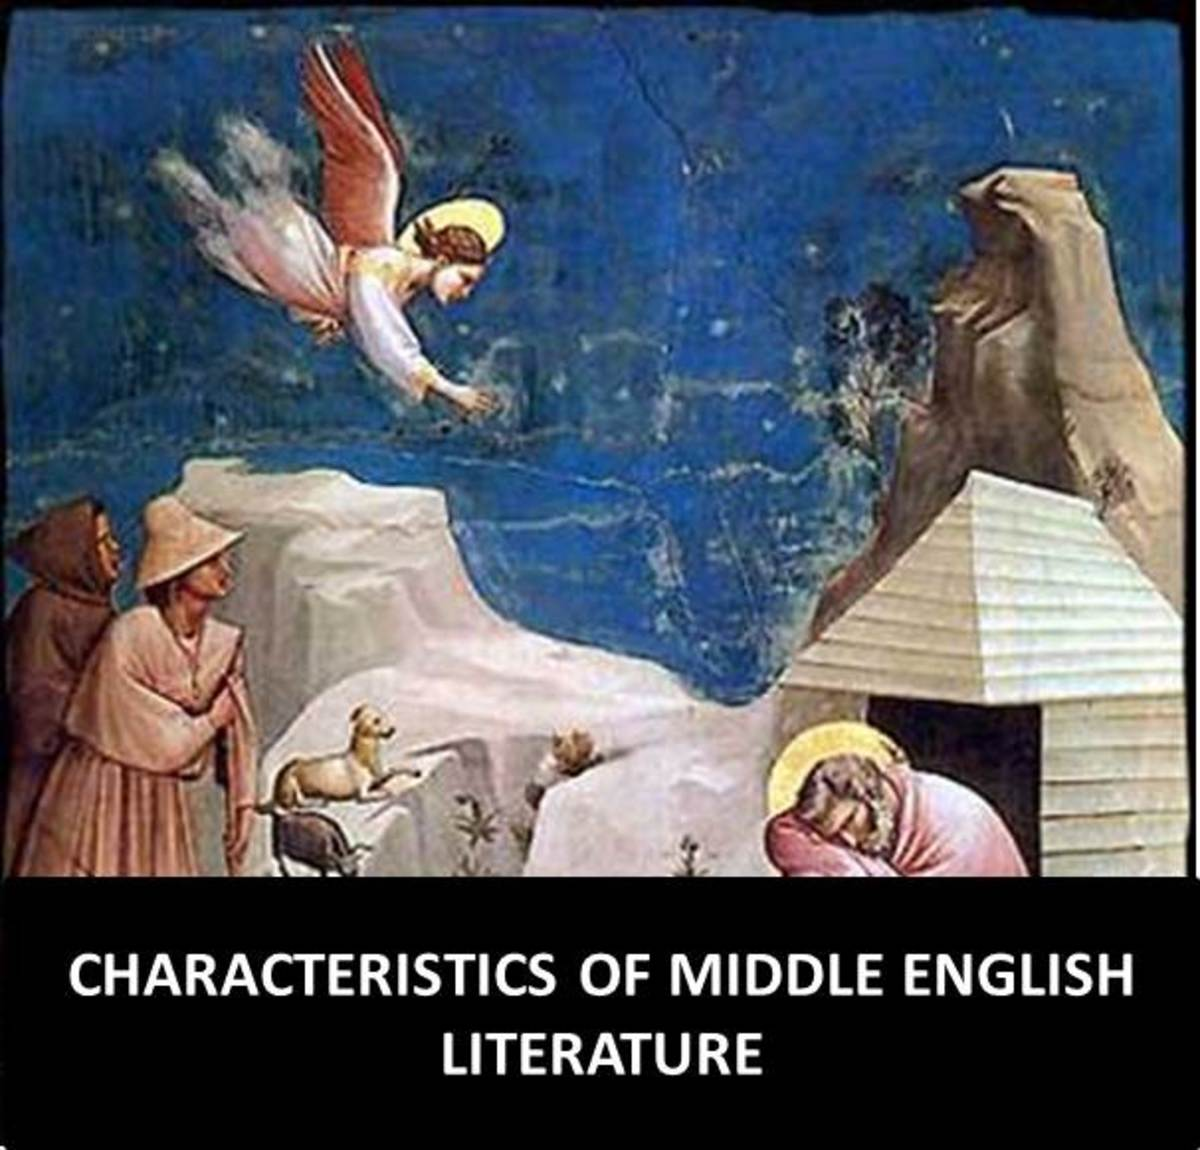 Characteristics of Middle English Literature